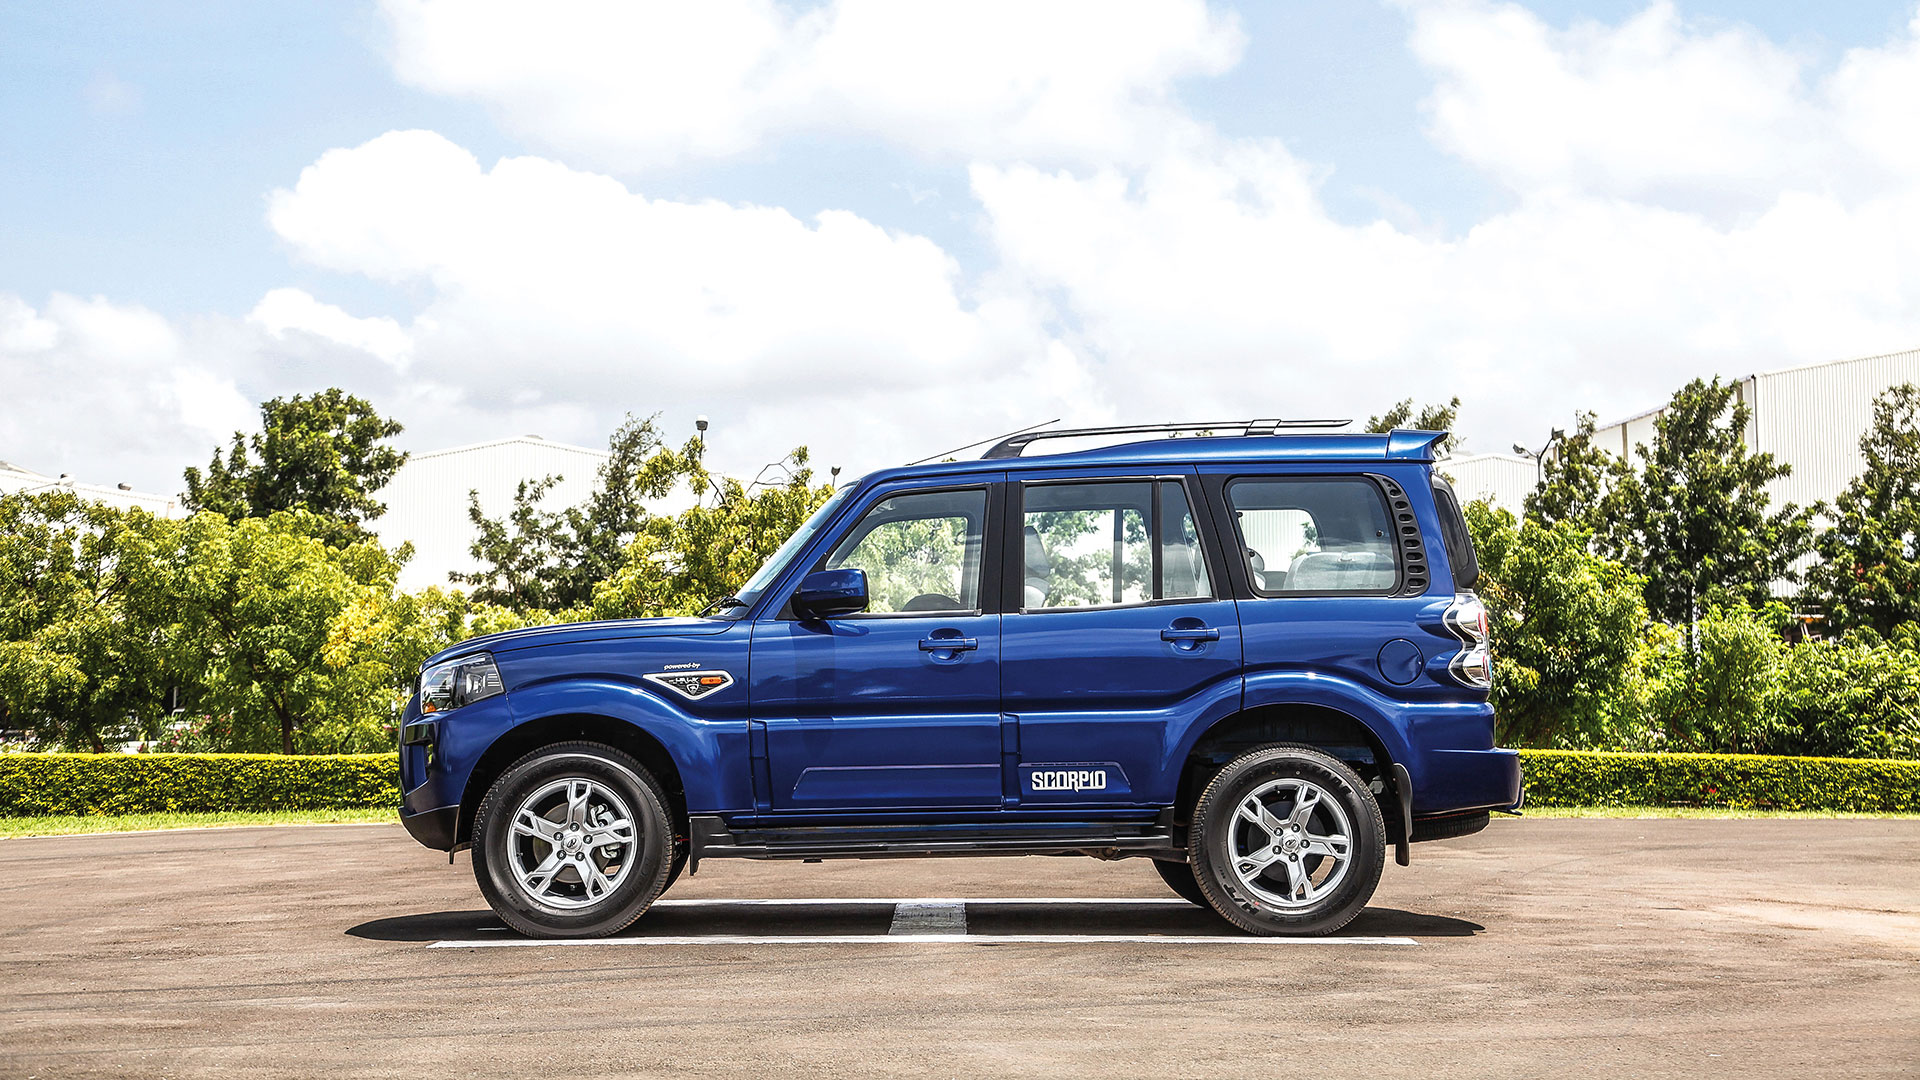 Mahindra Scorpio 2018 Price Mileage Reviews